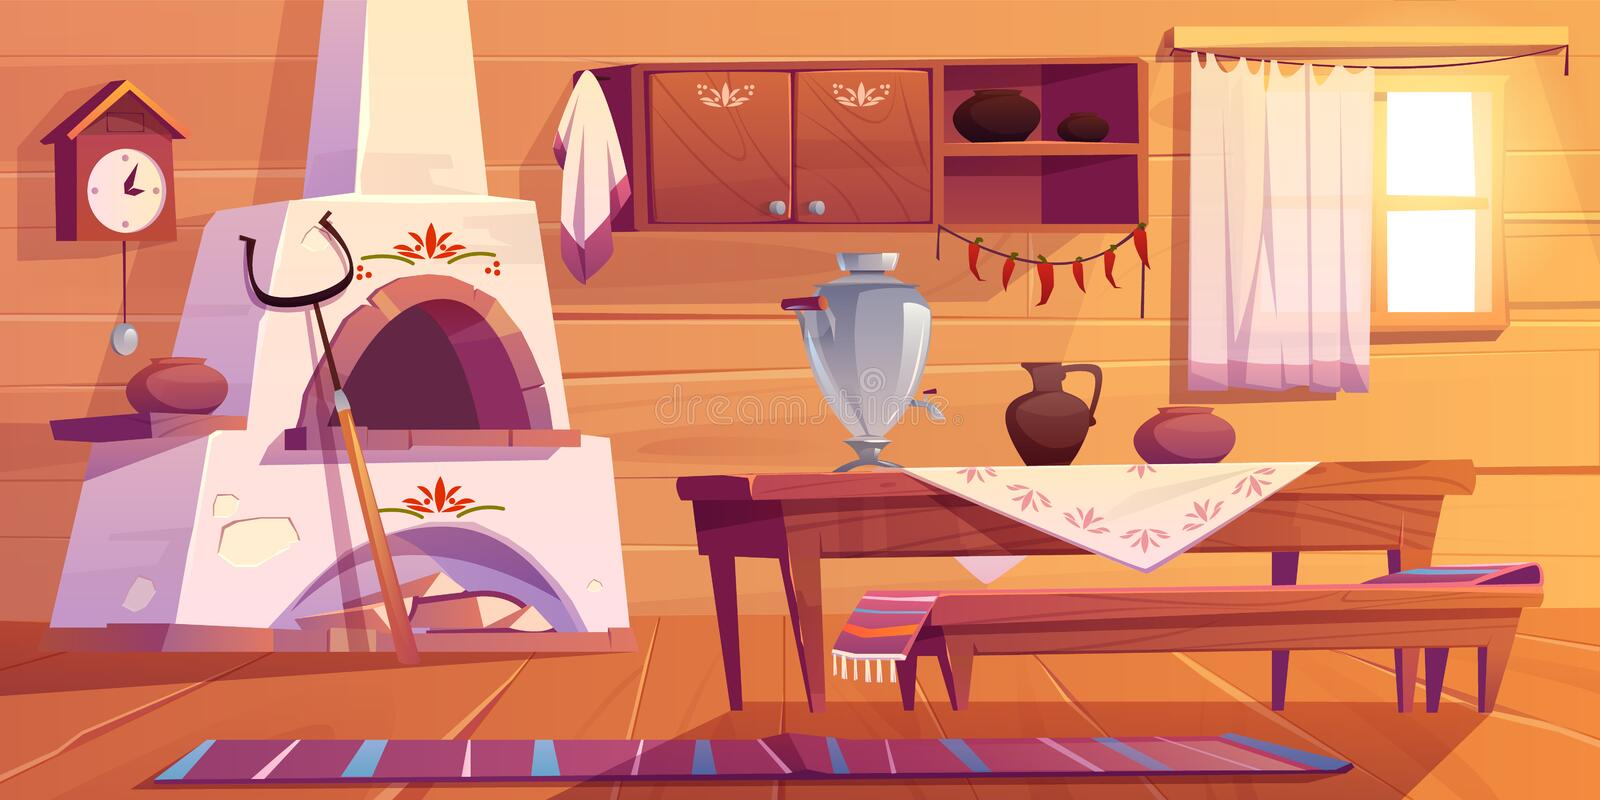 Old russian kitchen empty interior with stove. Old russian kitchen empty interior with traditional stove, wooden table, bench, cuckoo-clock, samovar, grip, shelf royalty free illustration